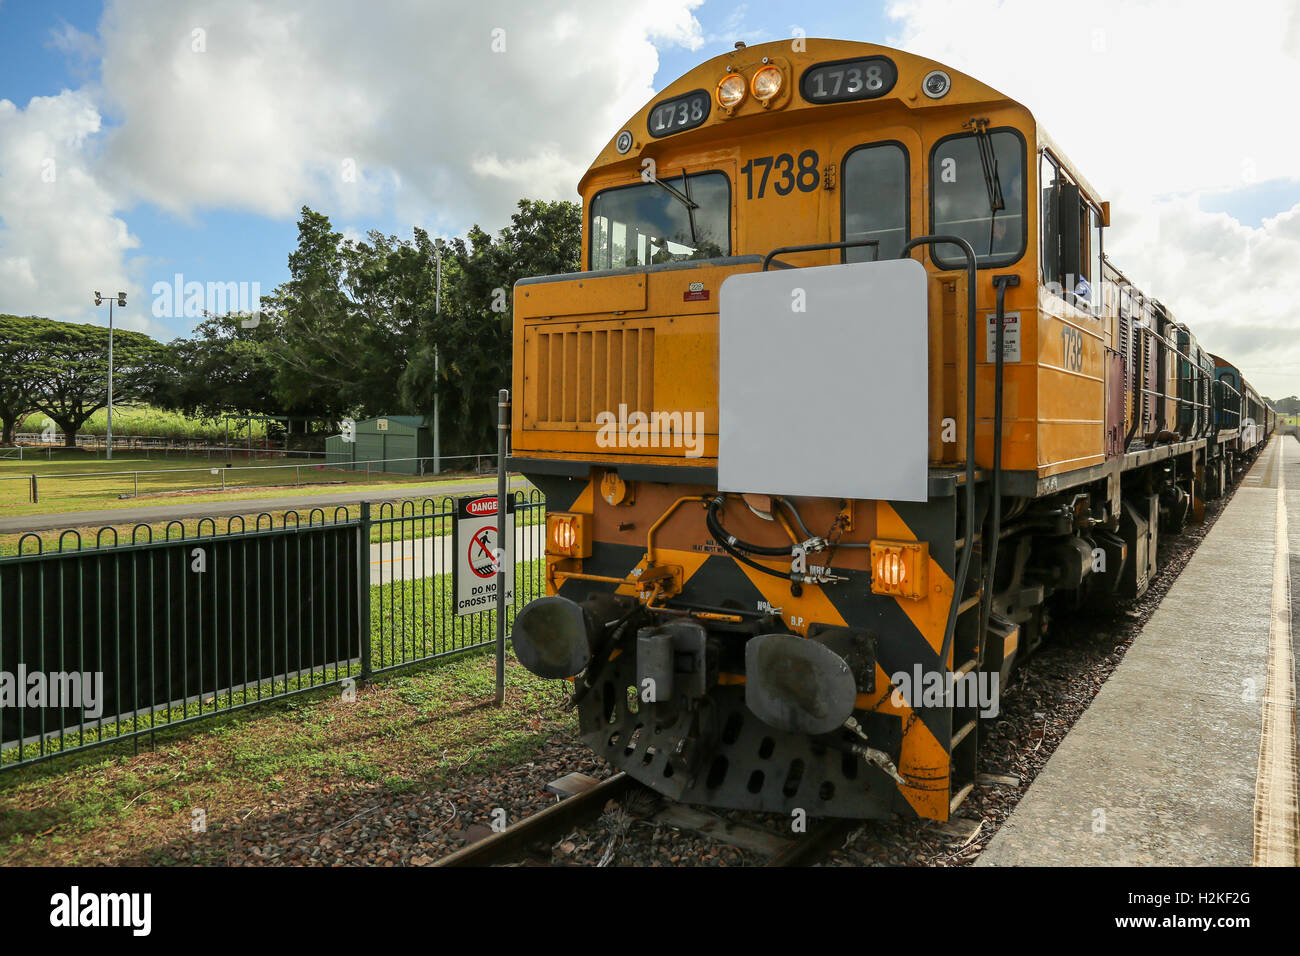 Diesel locomotive engine at an old scenic Railway in Kuranda Australia - Stock Image